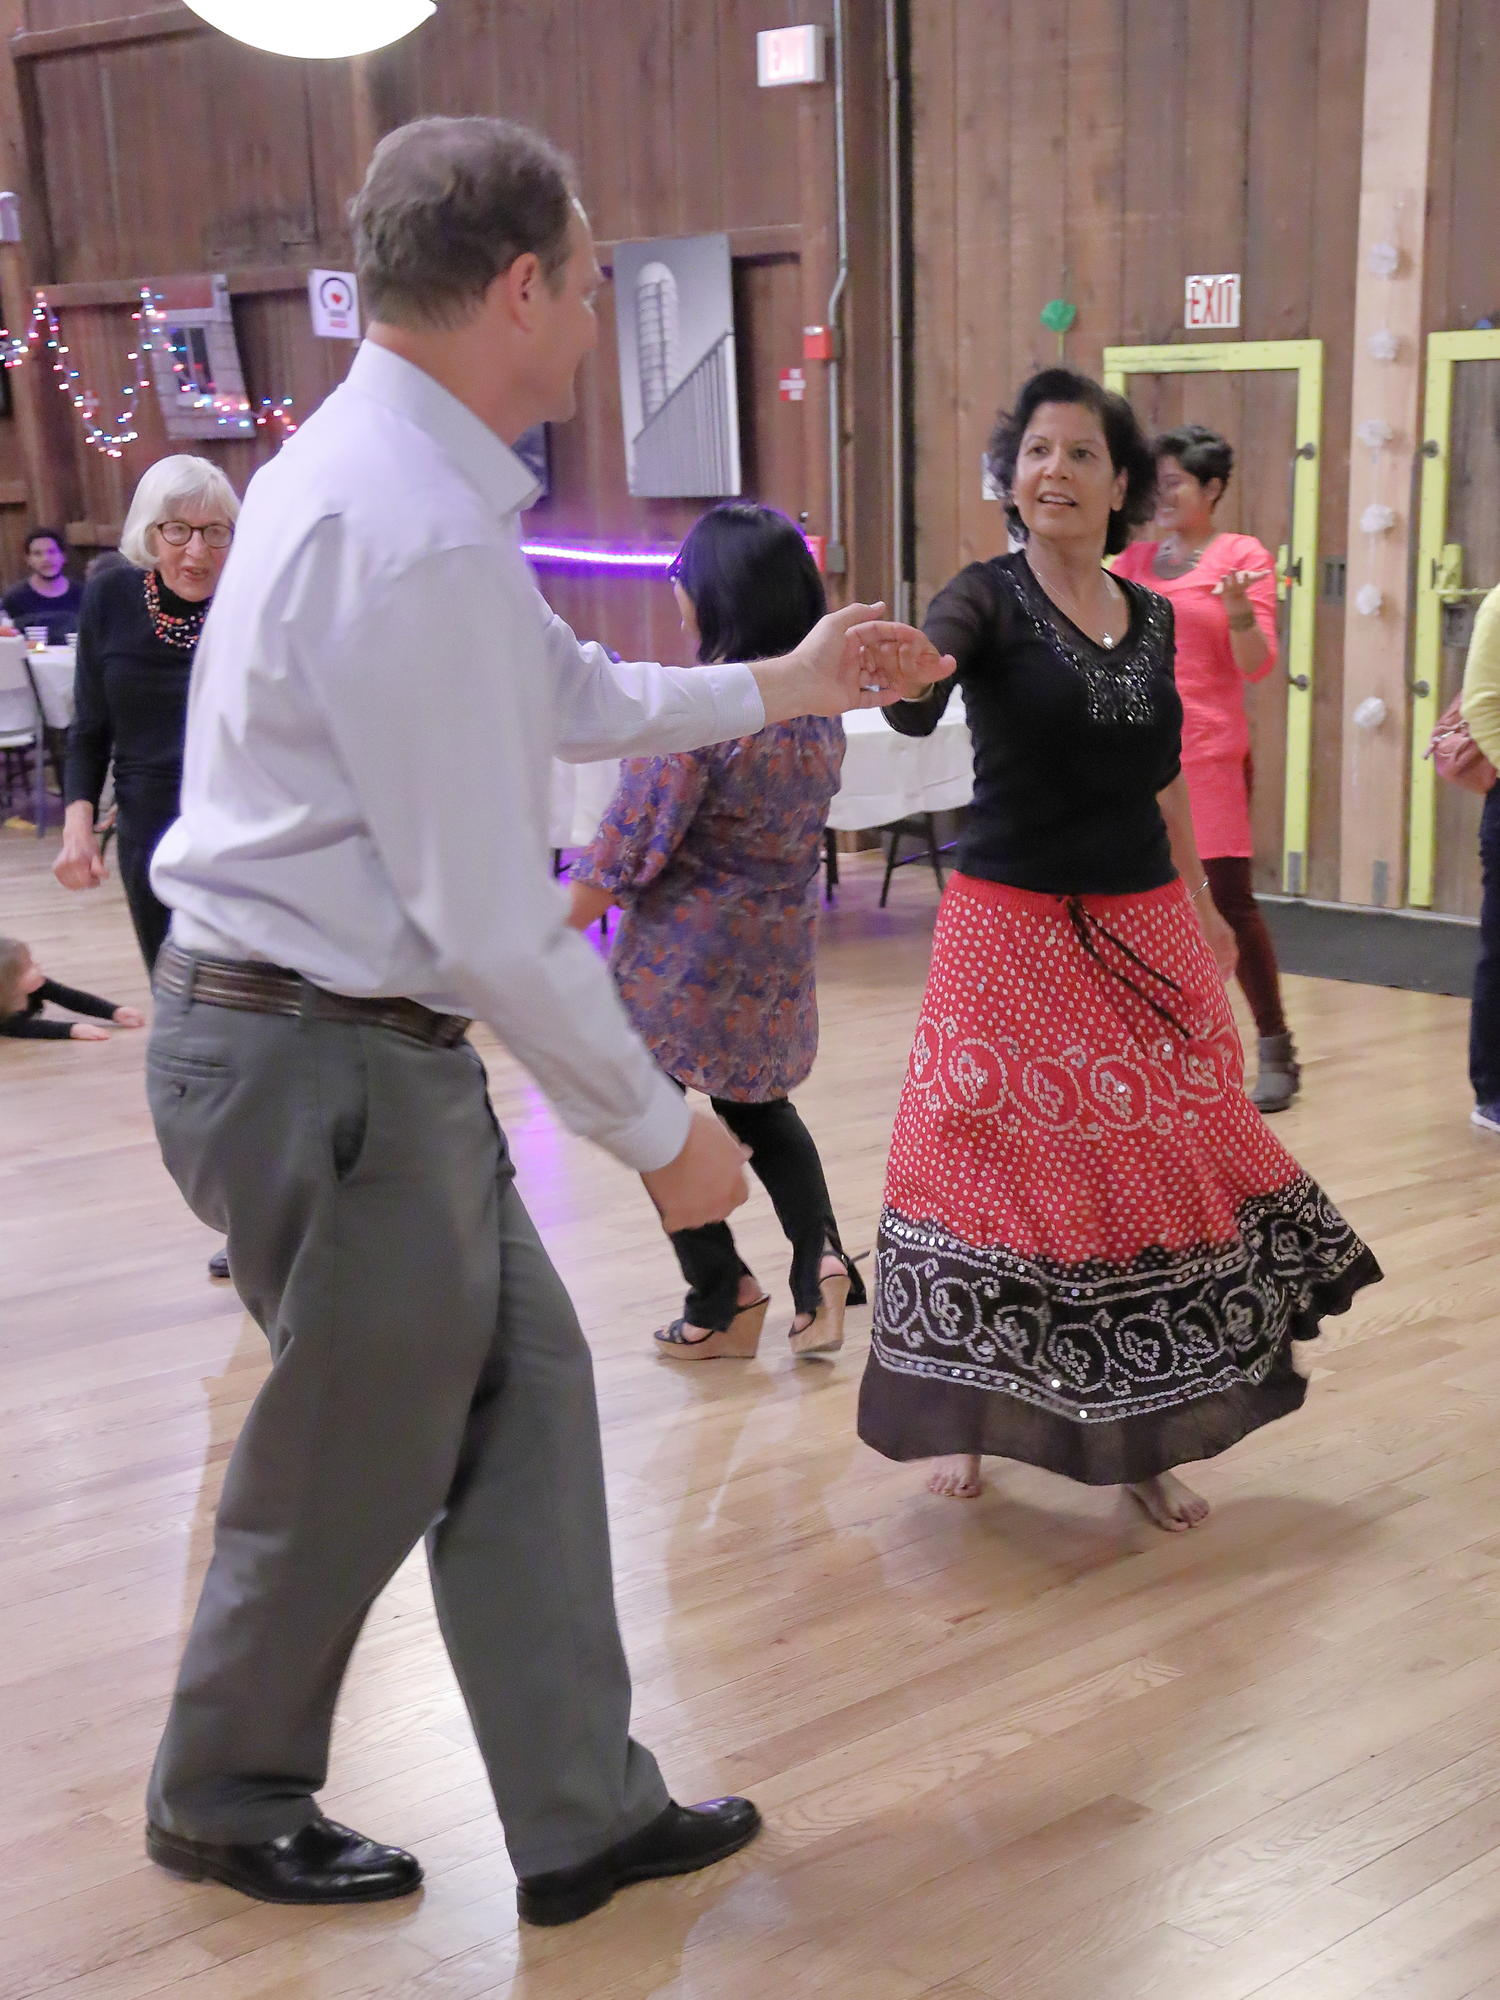 (1/2) Fermilab community members celebrated Diwali on Oct. 14. Dancing inside Kuhn Barn are Craig Drennan and Alpana Shenai. people, lab life, holiday Photo: Elliott McCrory